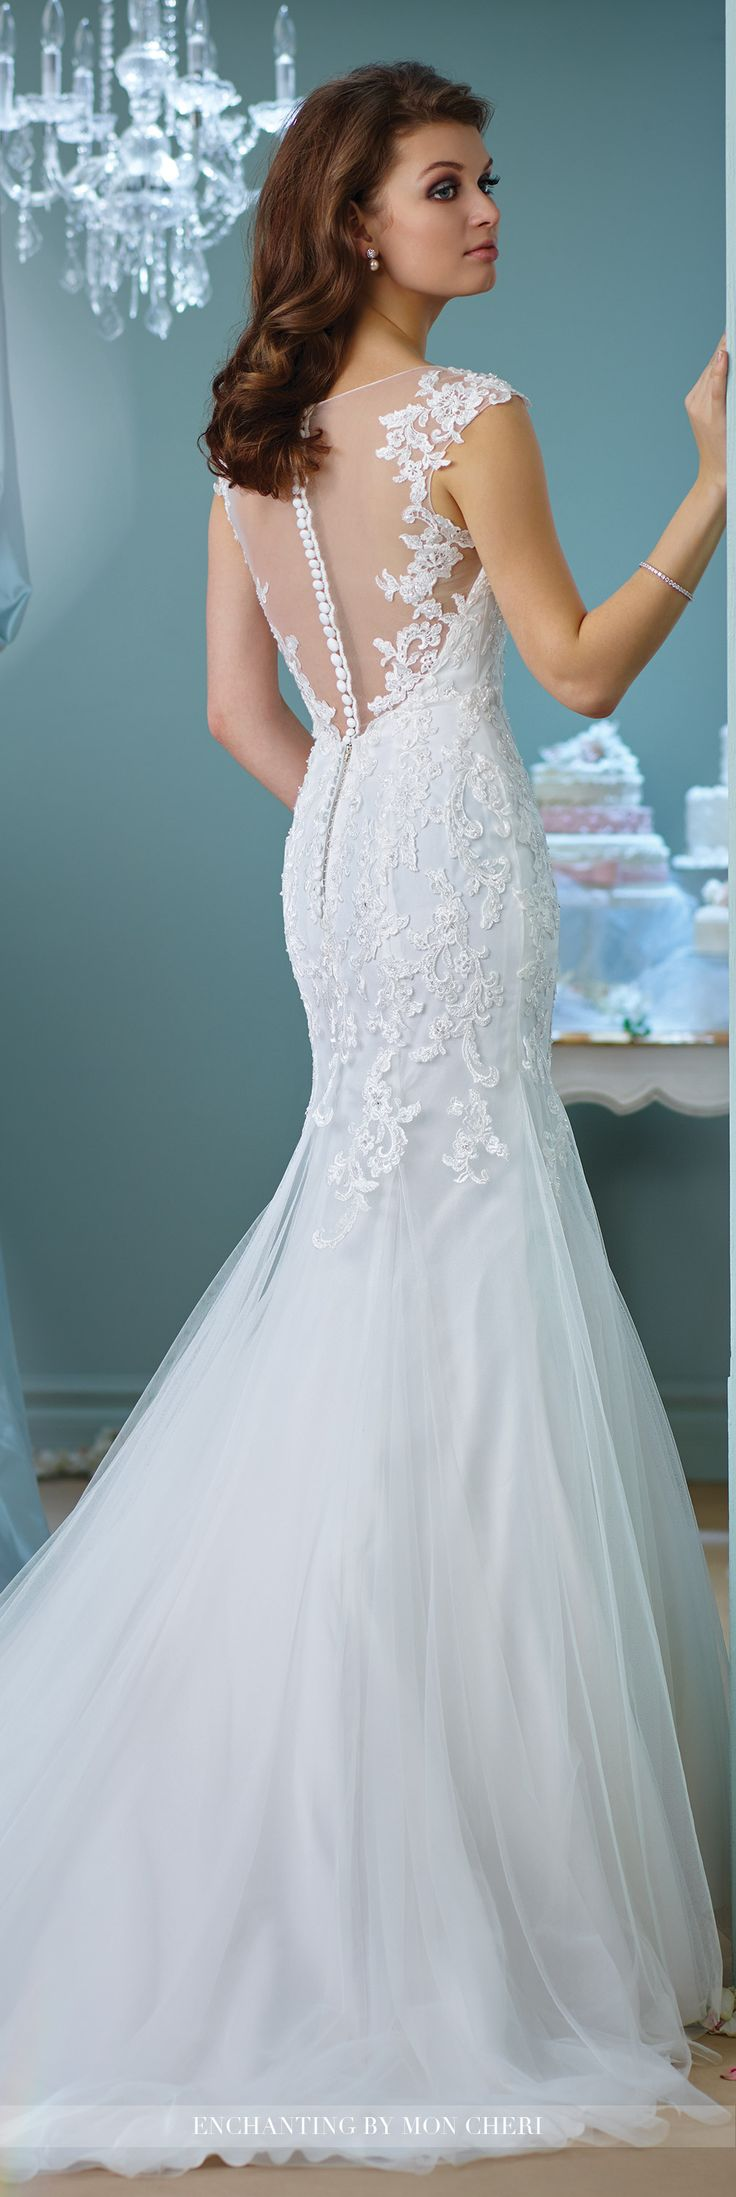 151 best Enchanting by Mon Cheri Wedding Dresses images on Pinterest ...